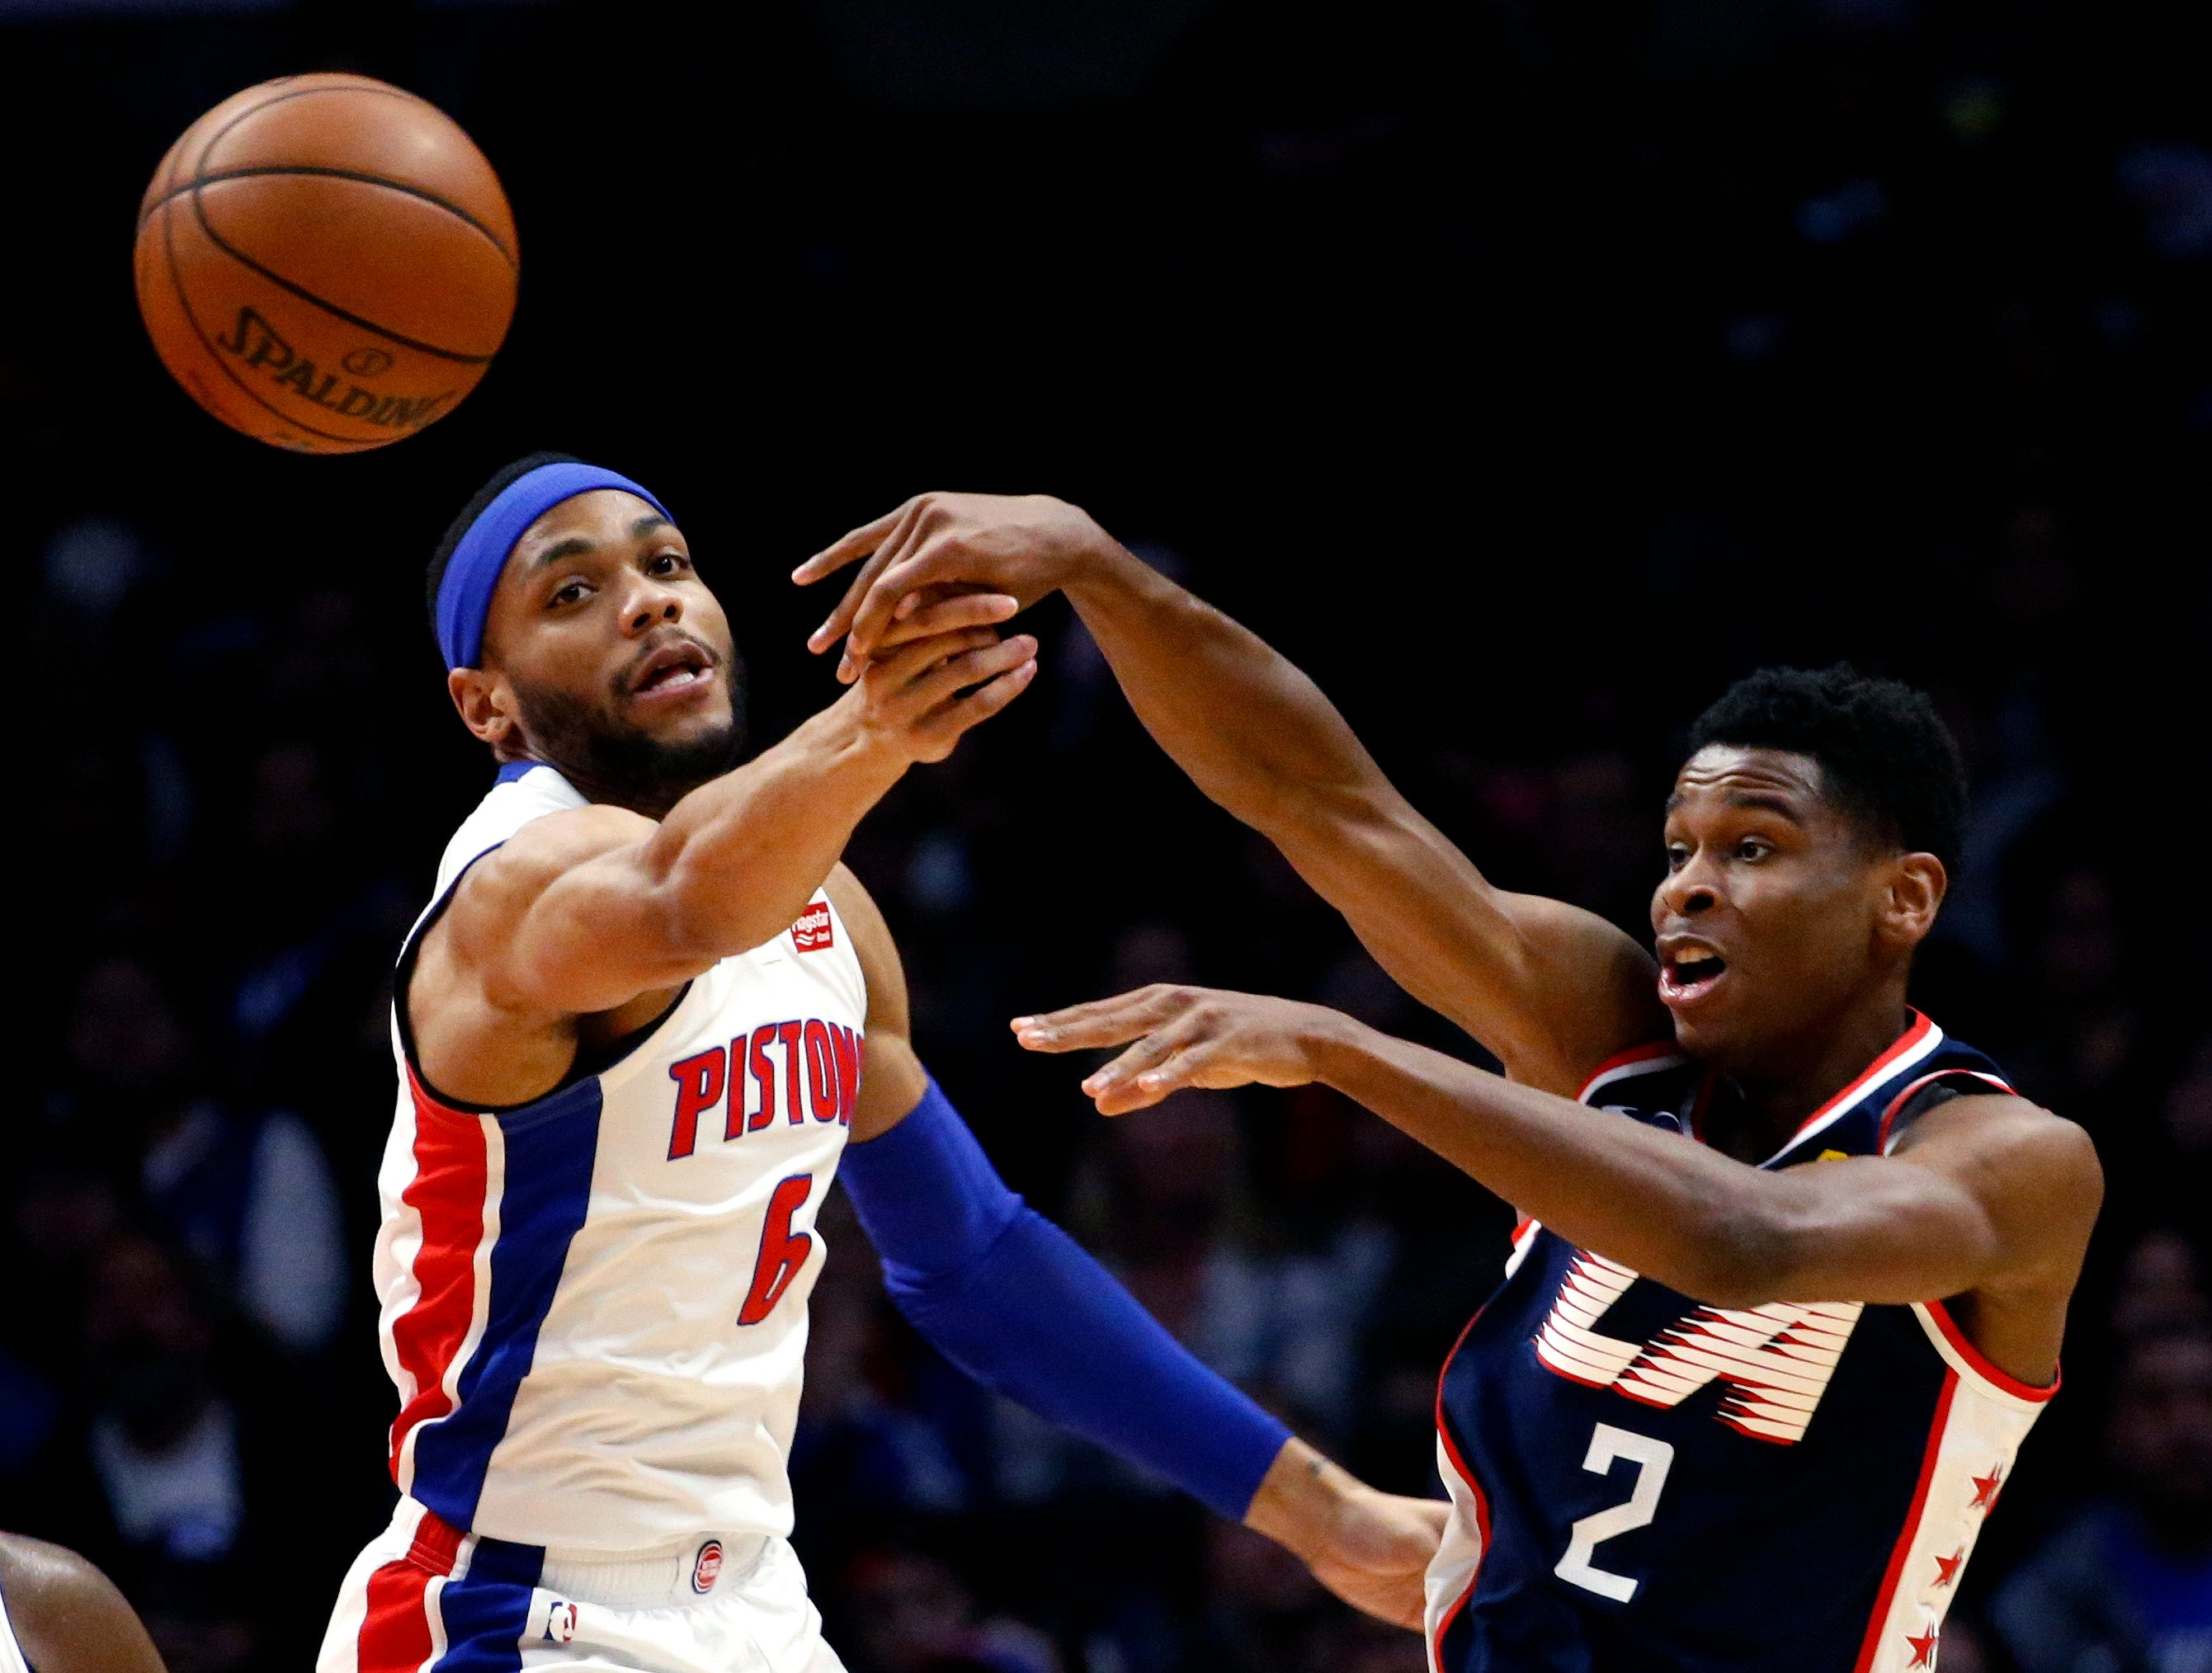 Los Angeles Clippers' Shai Gilgeous-Alexander, right, passes the ball away from Detroit Pistons' Bruce Brown during the second half.